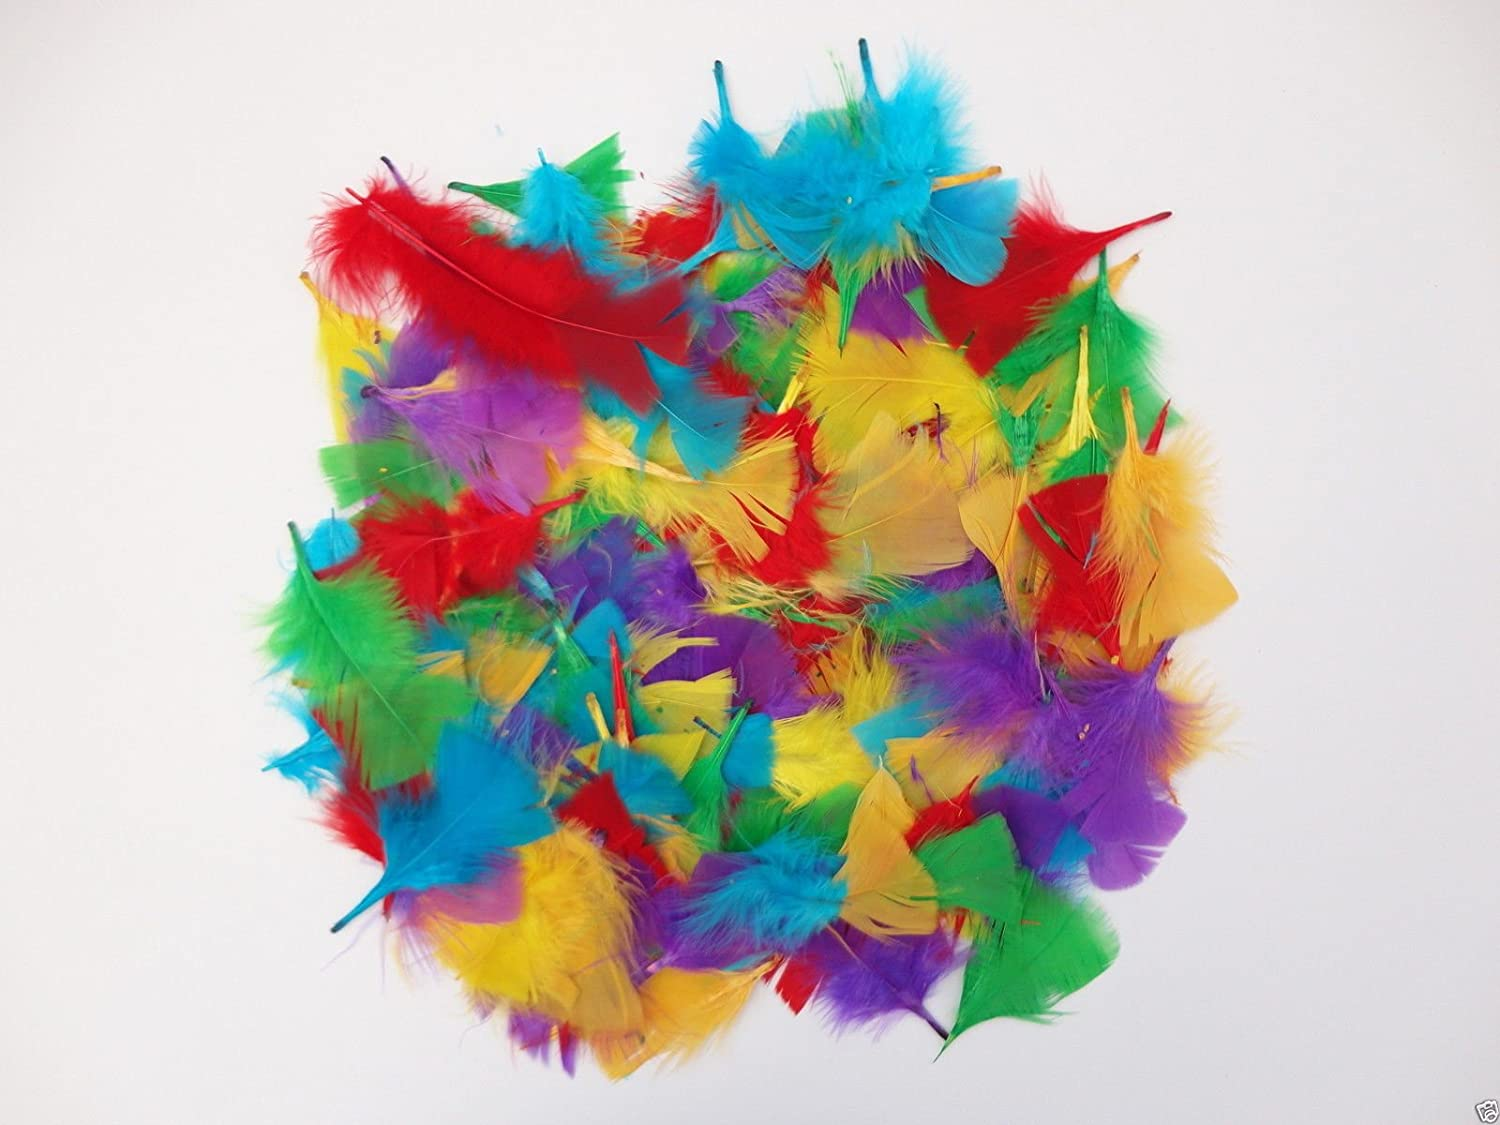 250+ Assorted Coloured Feathers Art Craft Collage Hats Costume Millinery a2bsales